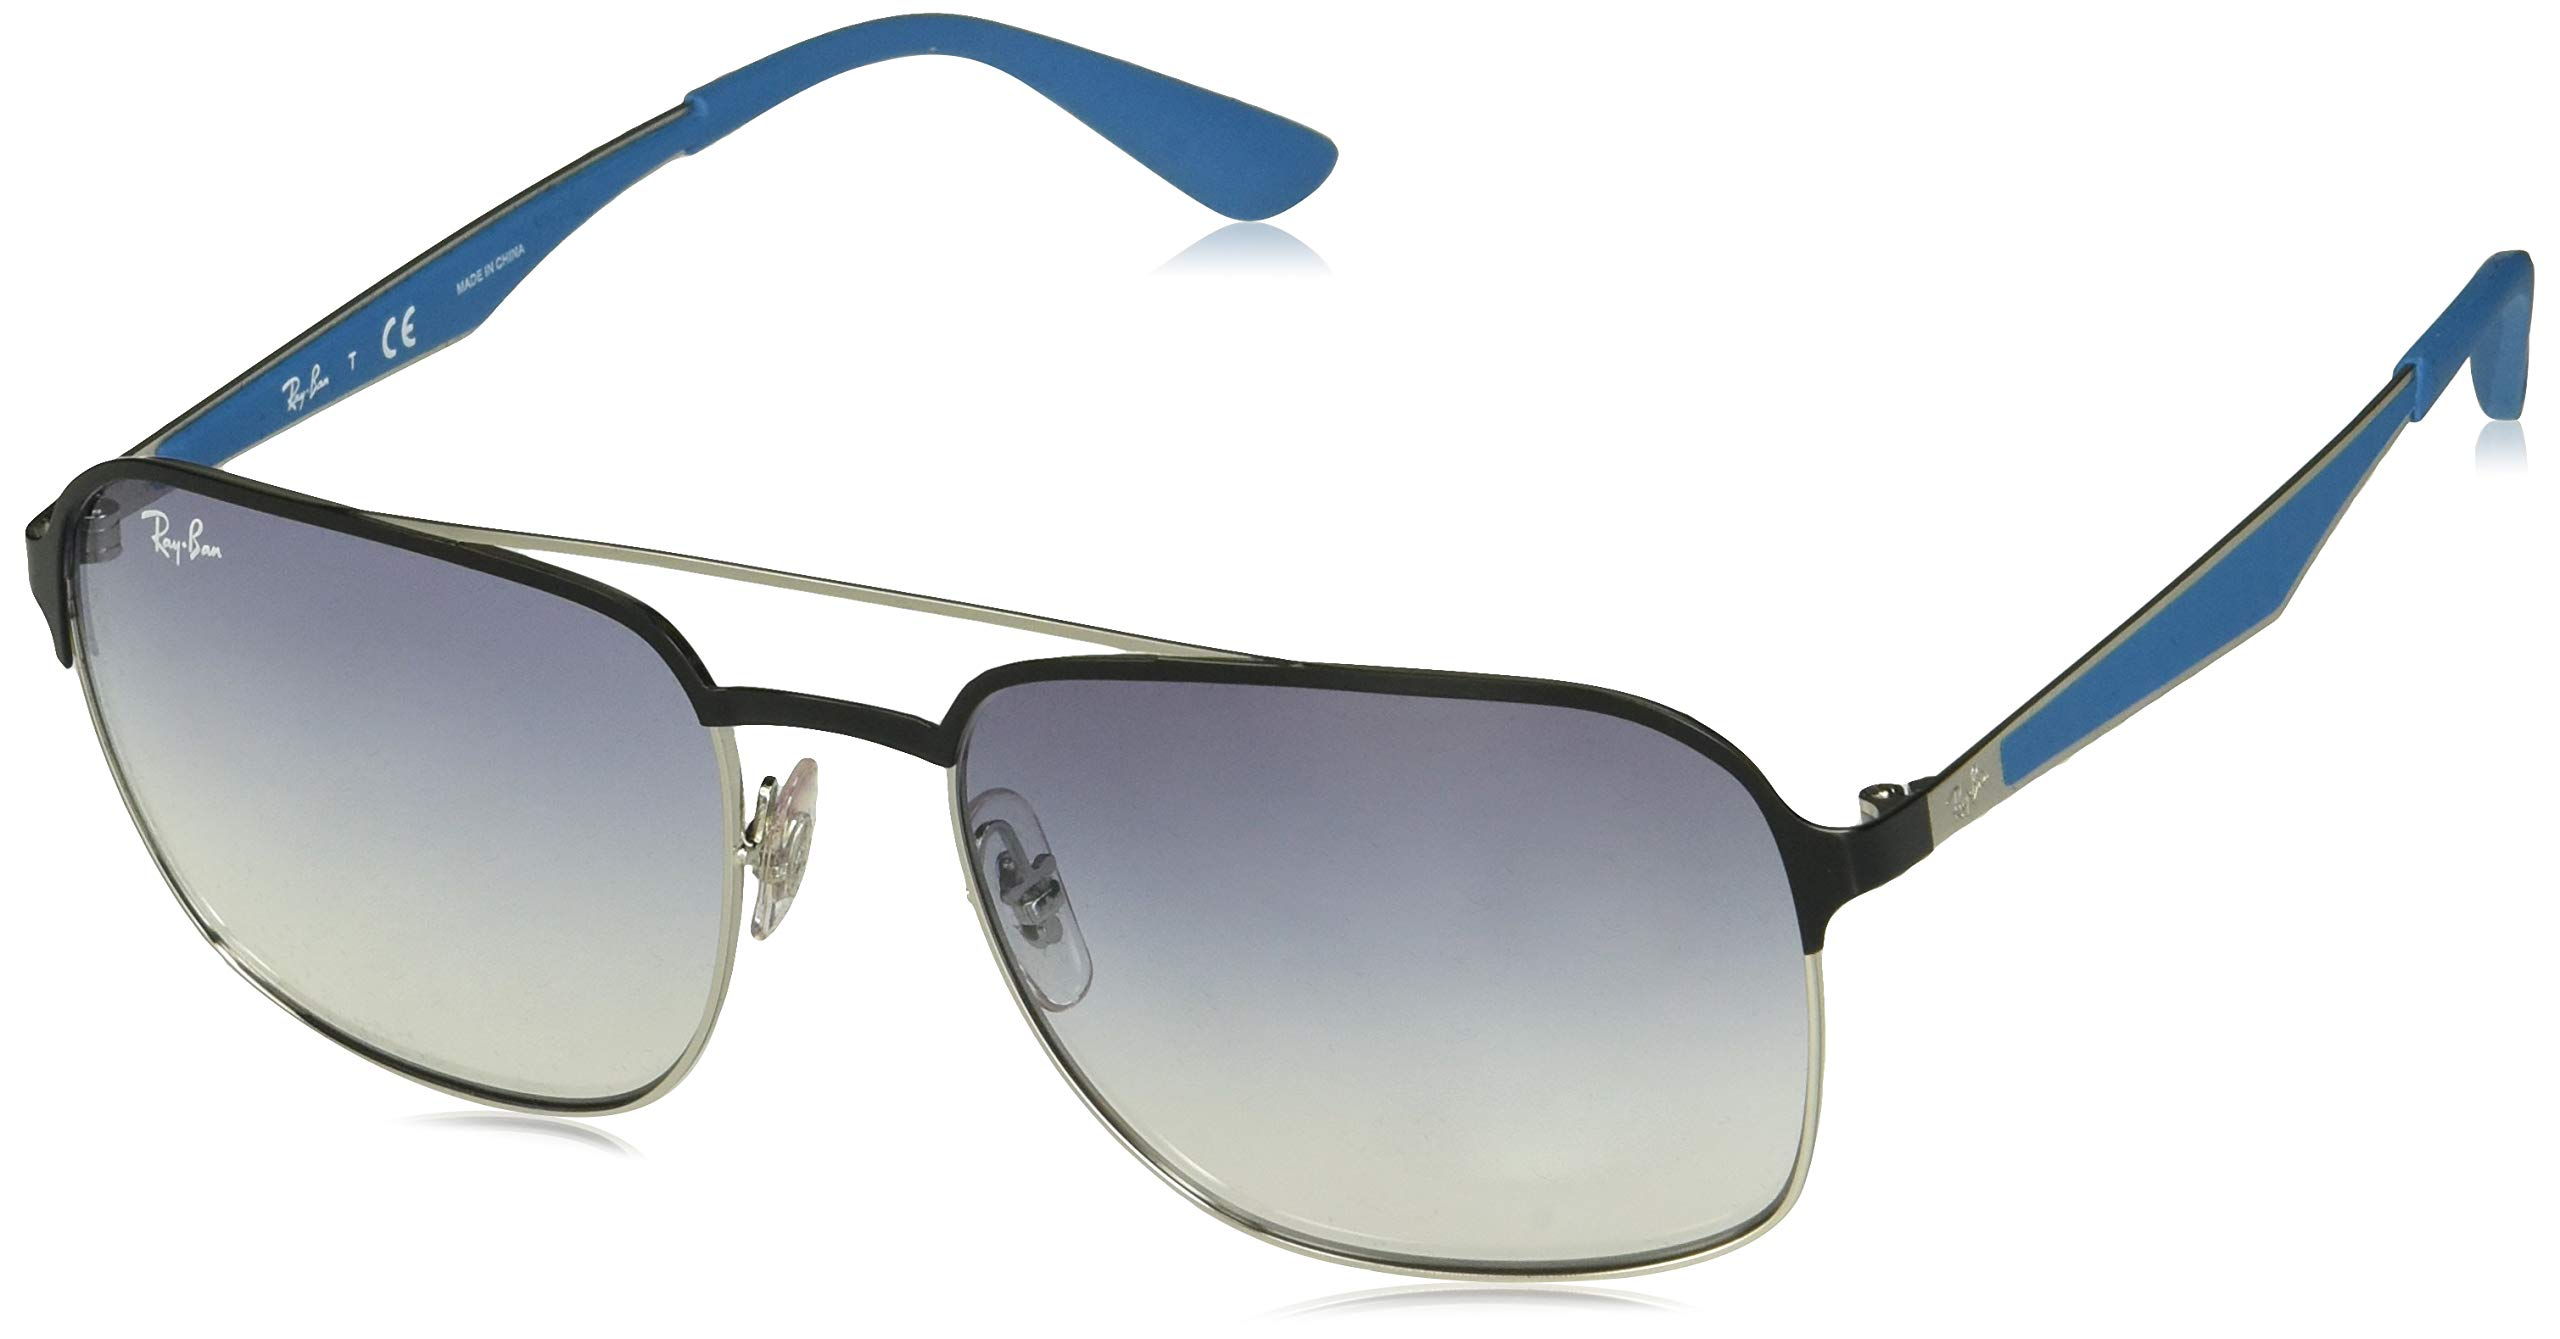 Ray-Ban RB3570 Square Metal Sunglasses, Black on Silver/Clear Gradient Light Blue, 58 mm